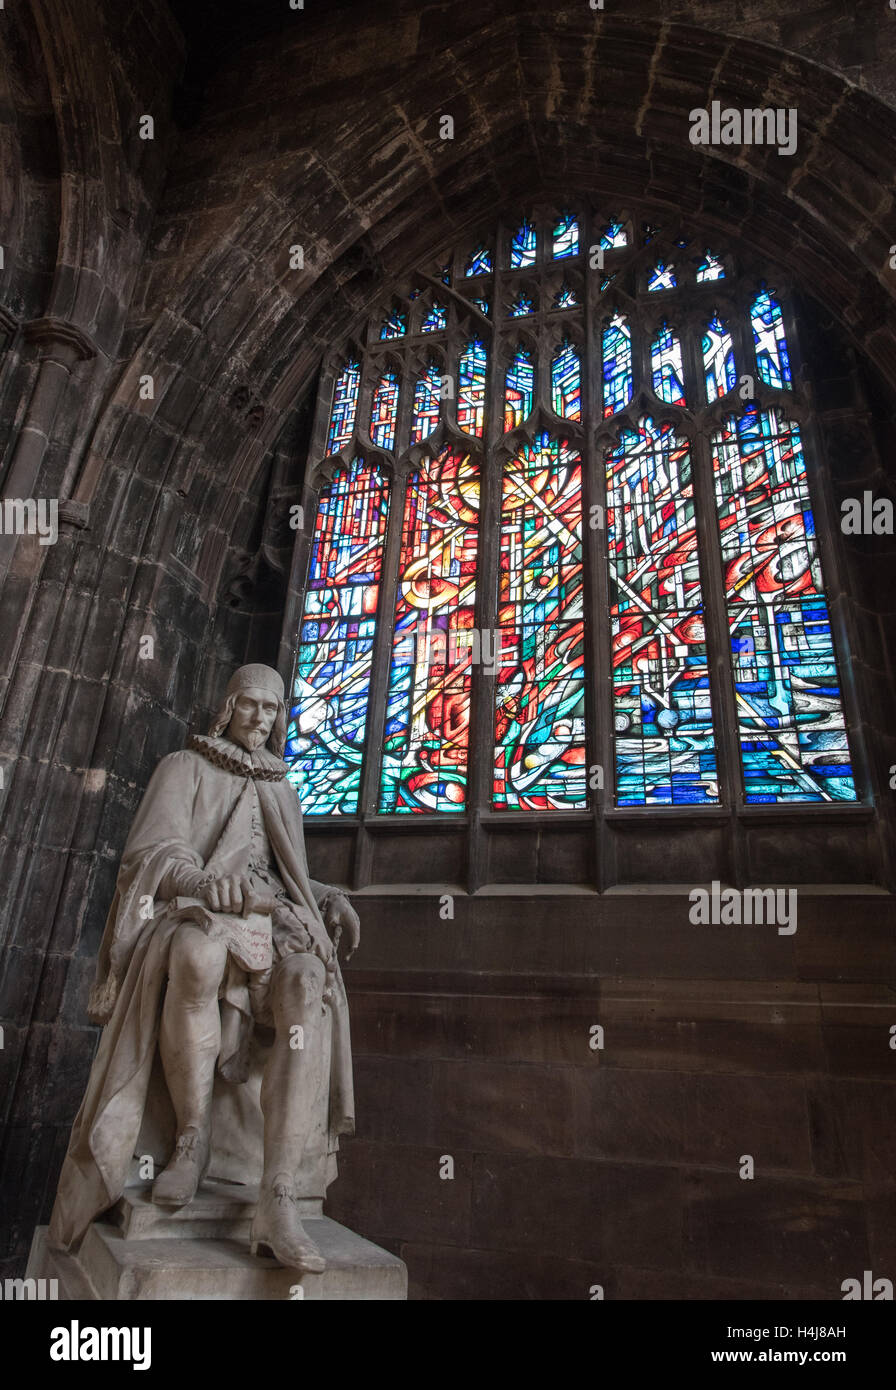 Statue of Humphrey Chetham and colorful stained glass window inside the famous  Manchester Cathedral. - Stock Image